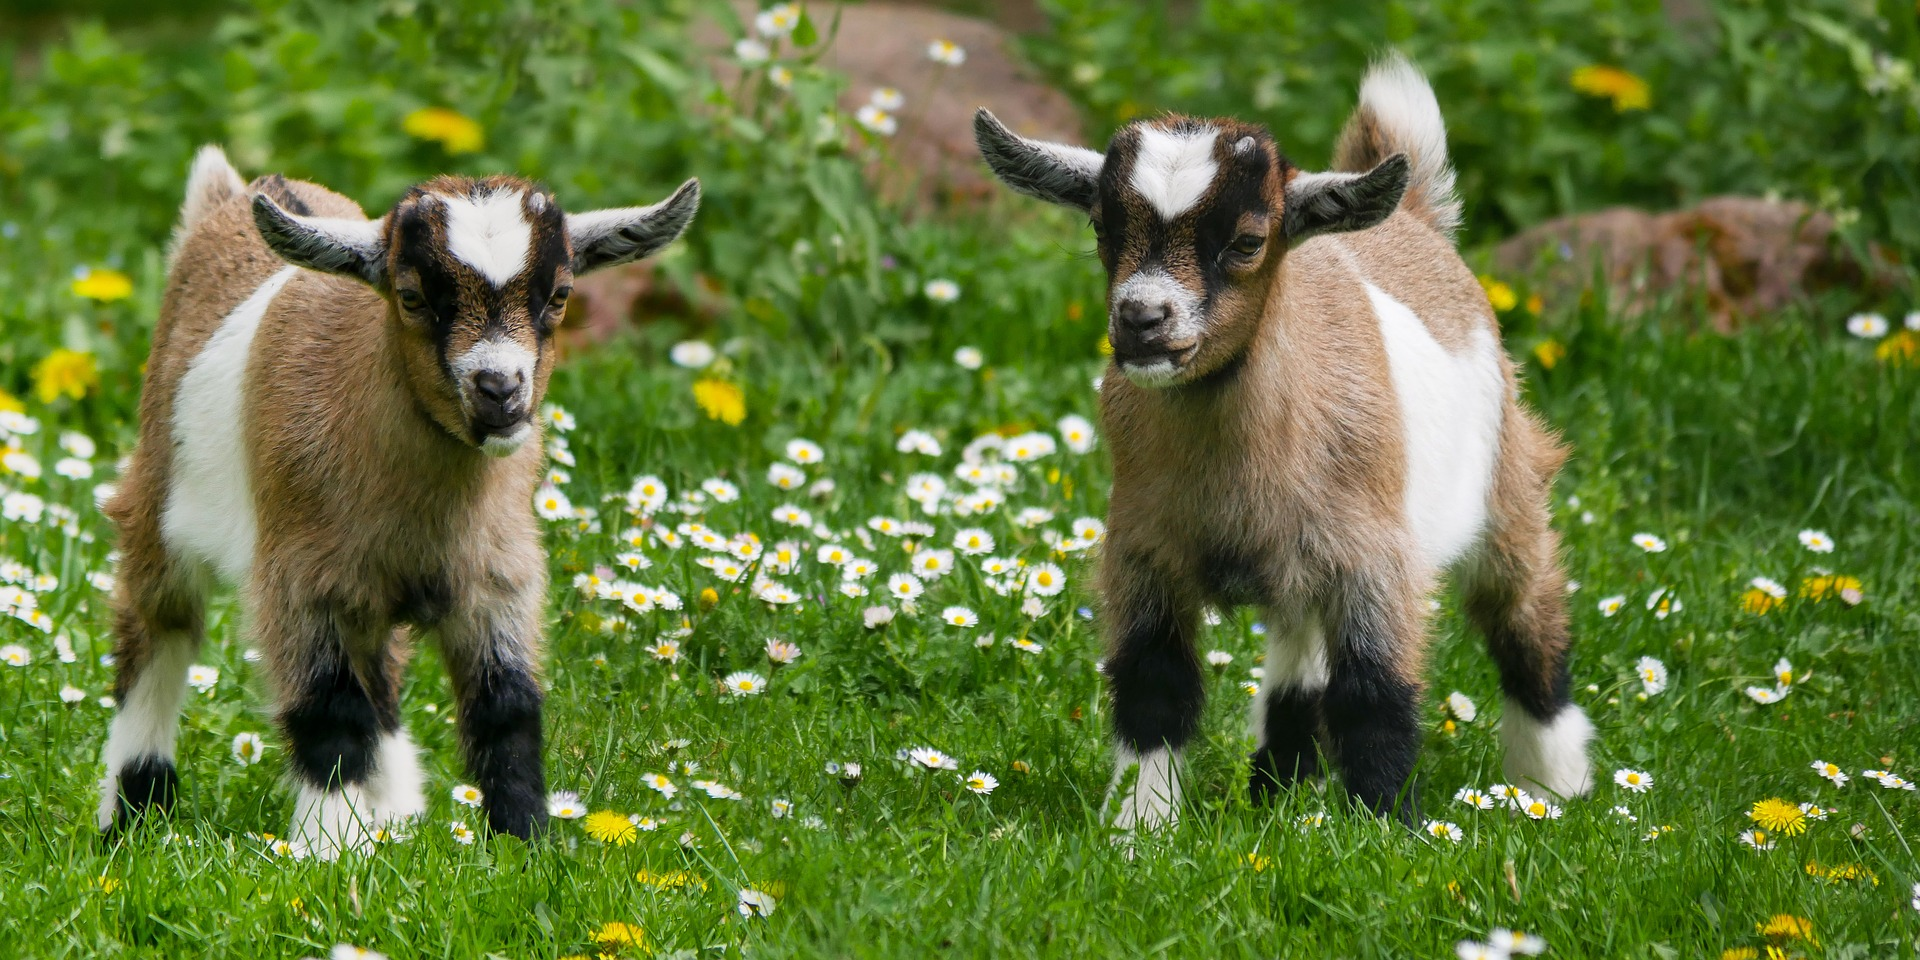 with pygmy goats running around at my feet. -